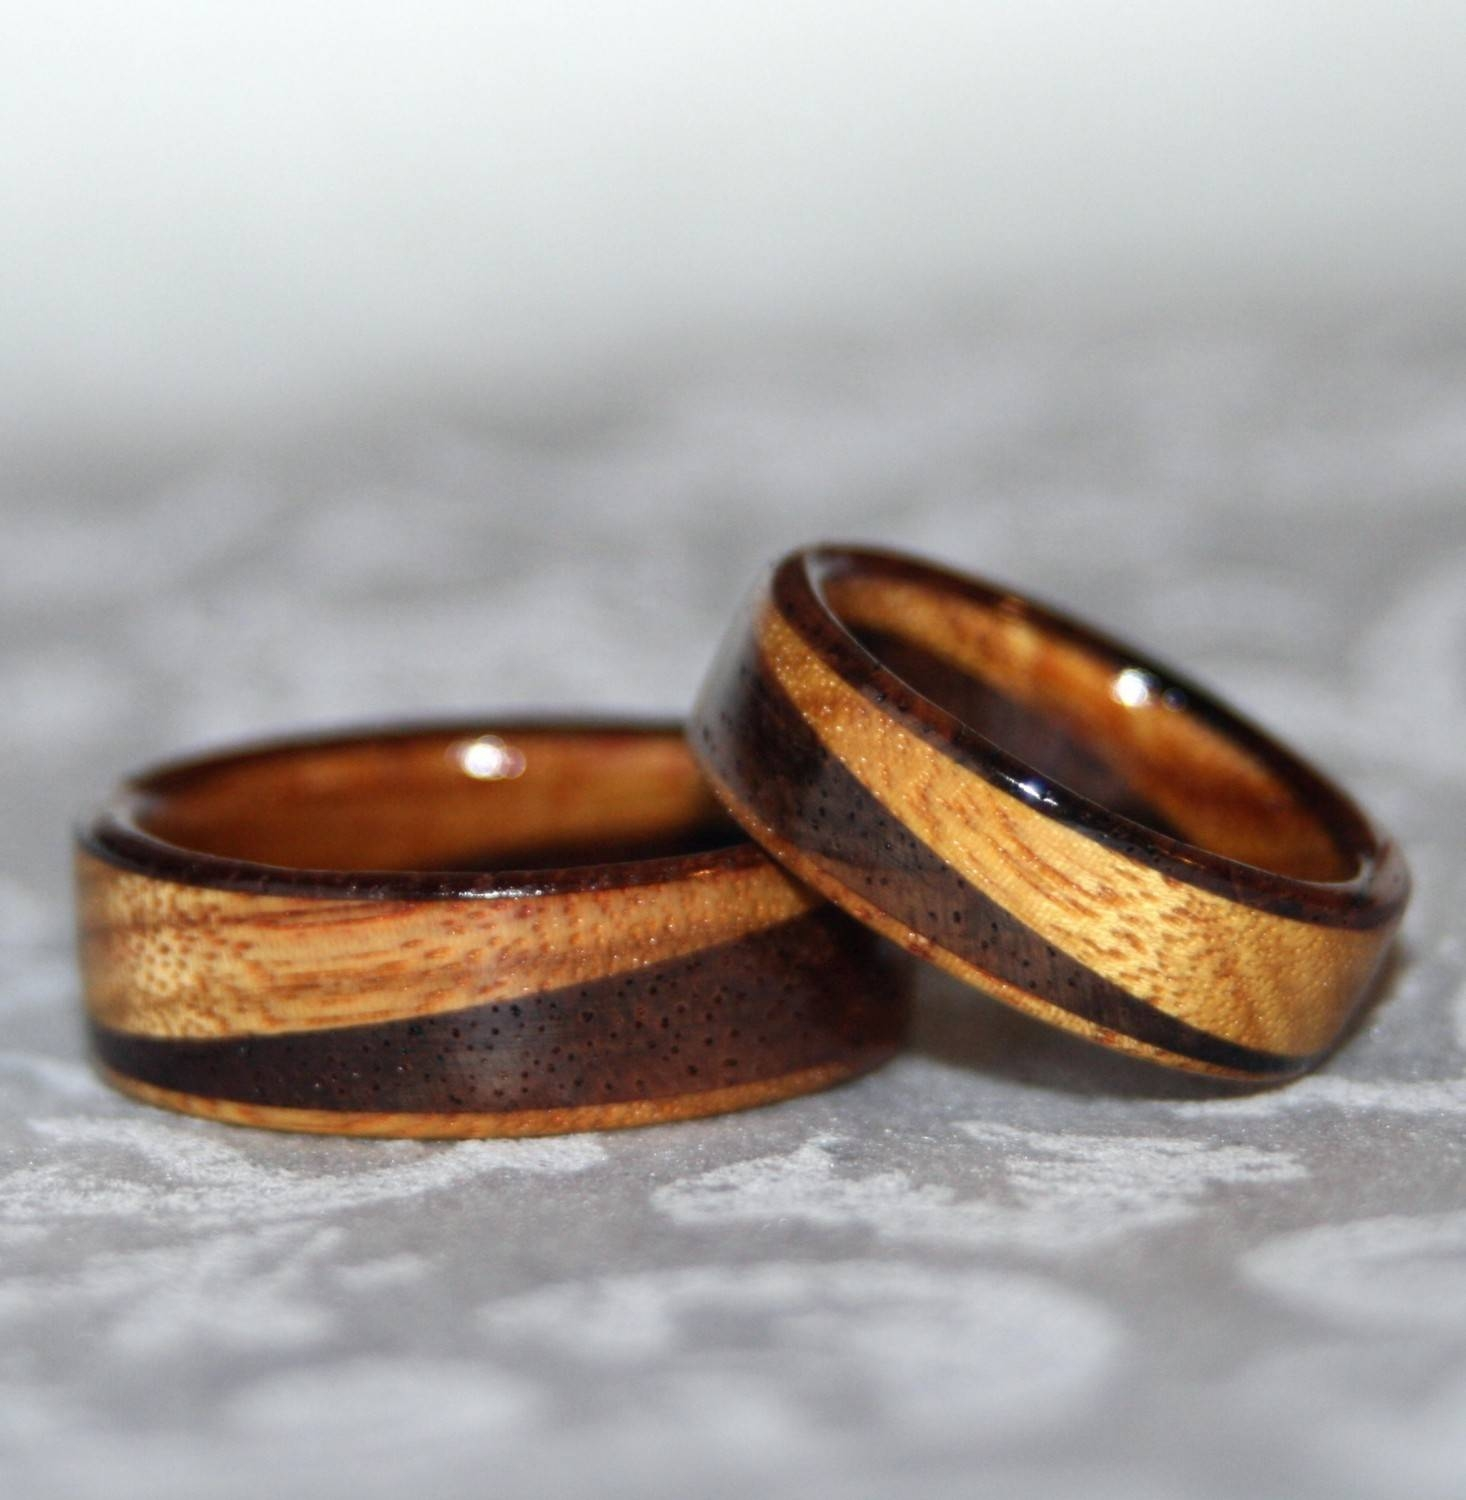 Wooden Rings Or Wedding Bands With Diagonal Design 2 Rings Throughout Wood Wedding Bands (View 13 of 15)